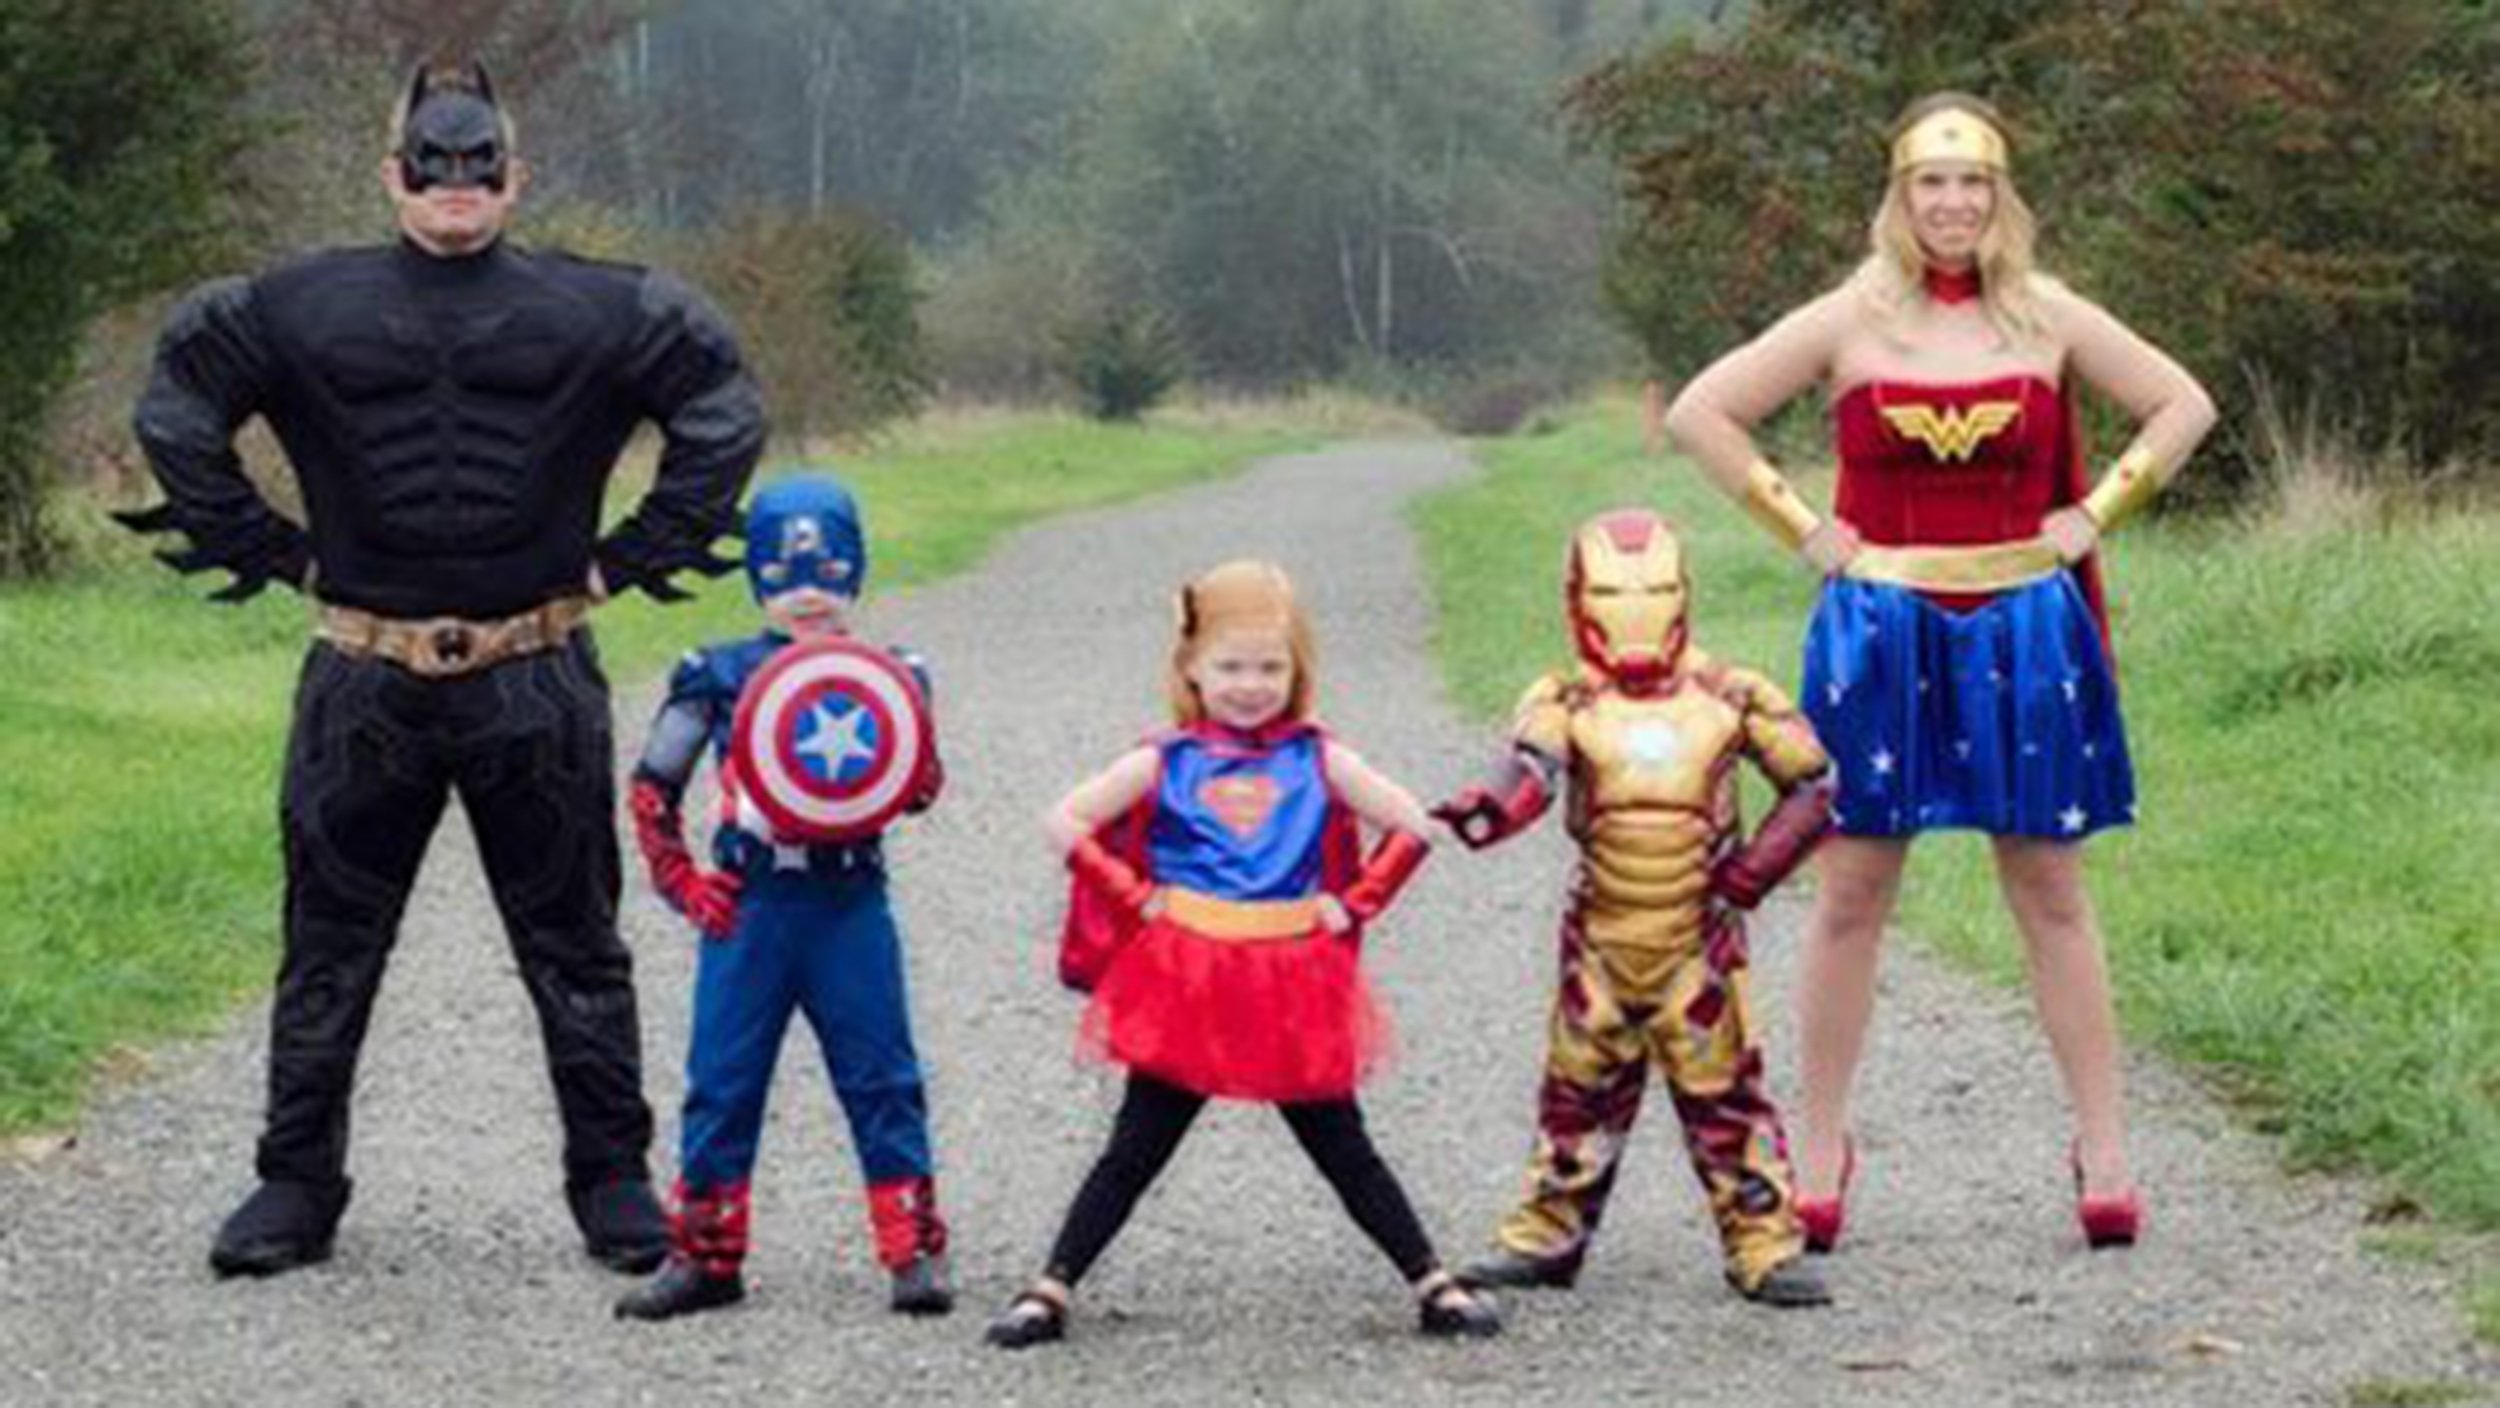 10 Fashionable Family Of Four Halloween Costume Ideas 19 of the cutest family theme costumes for halloween 7 2020